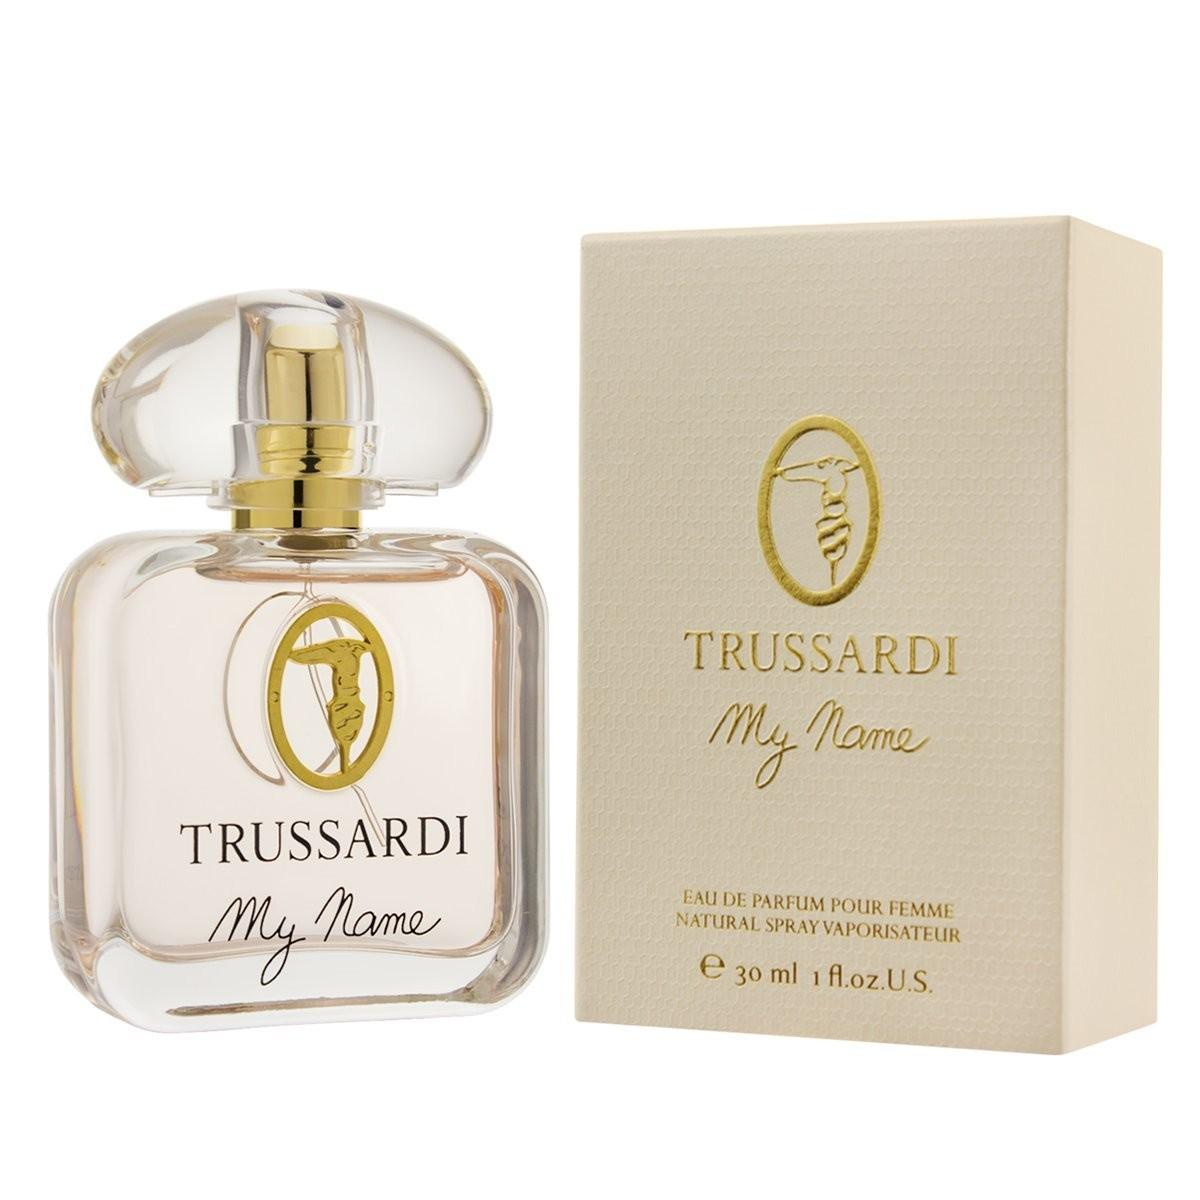 Версия А206 Trussardi - My Name,100ml